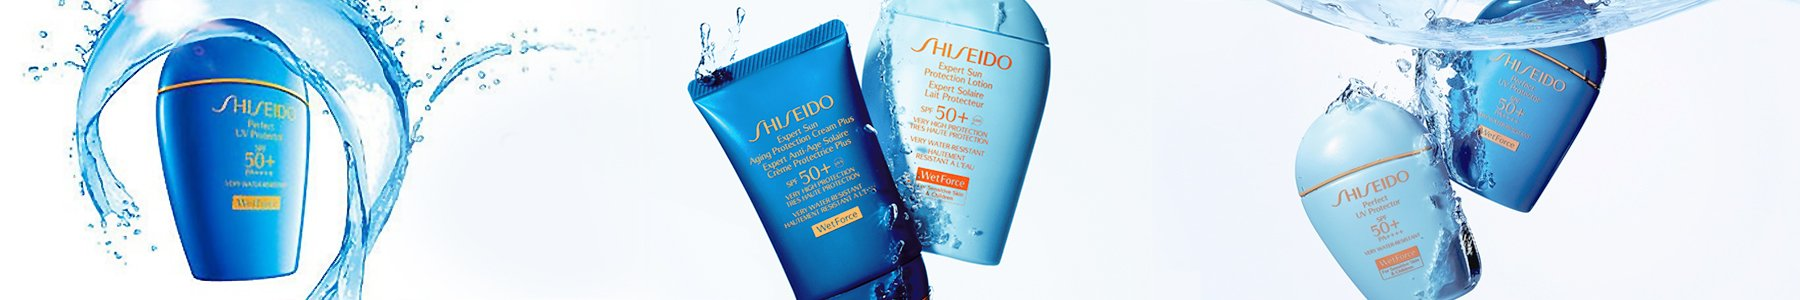 Sunscreen - KoKo Shiseido Beauté